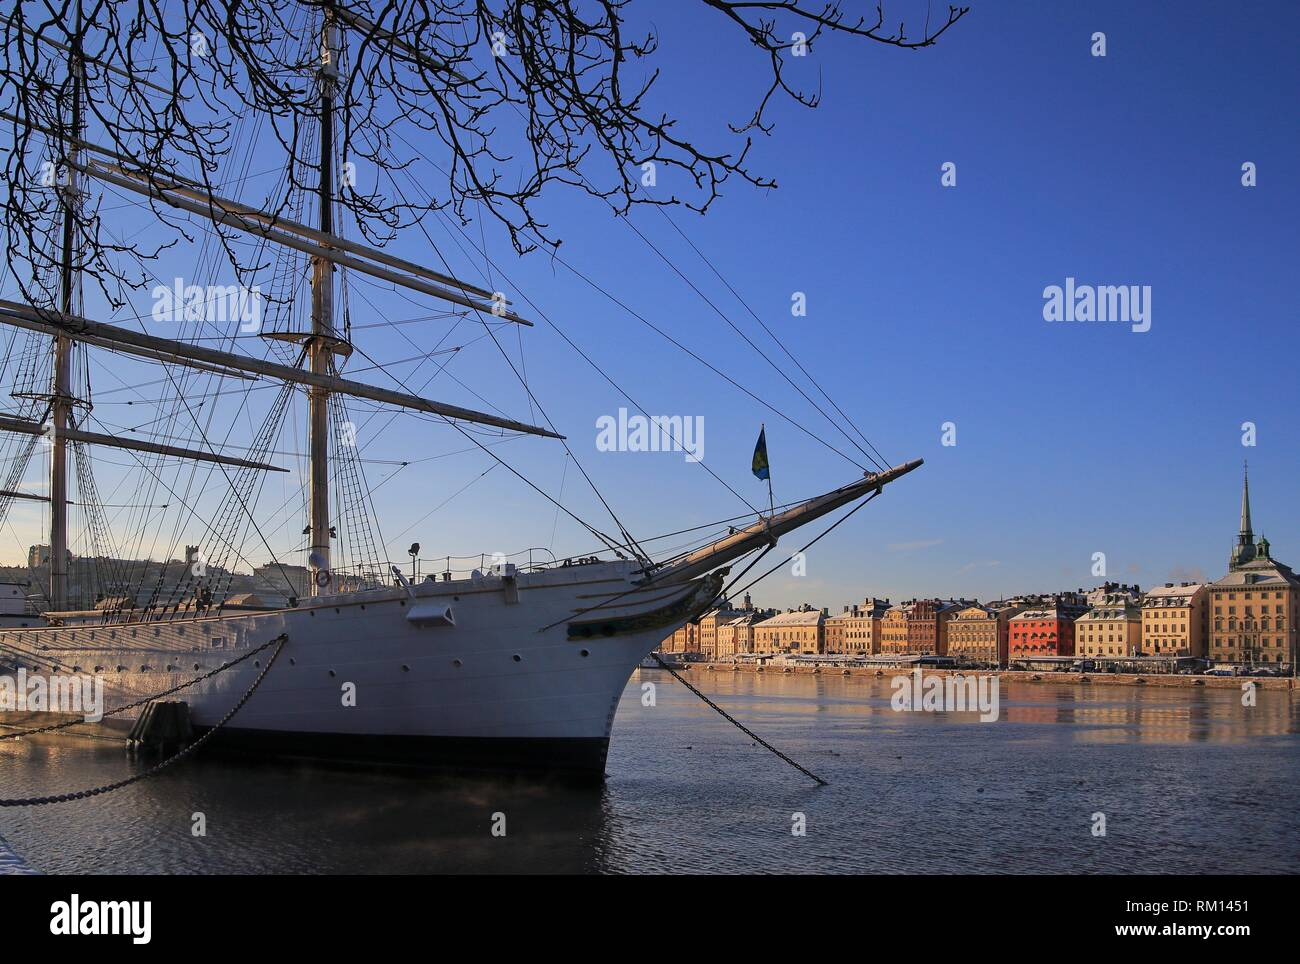 Stockholm in winter af Chapman Stock Photo